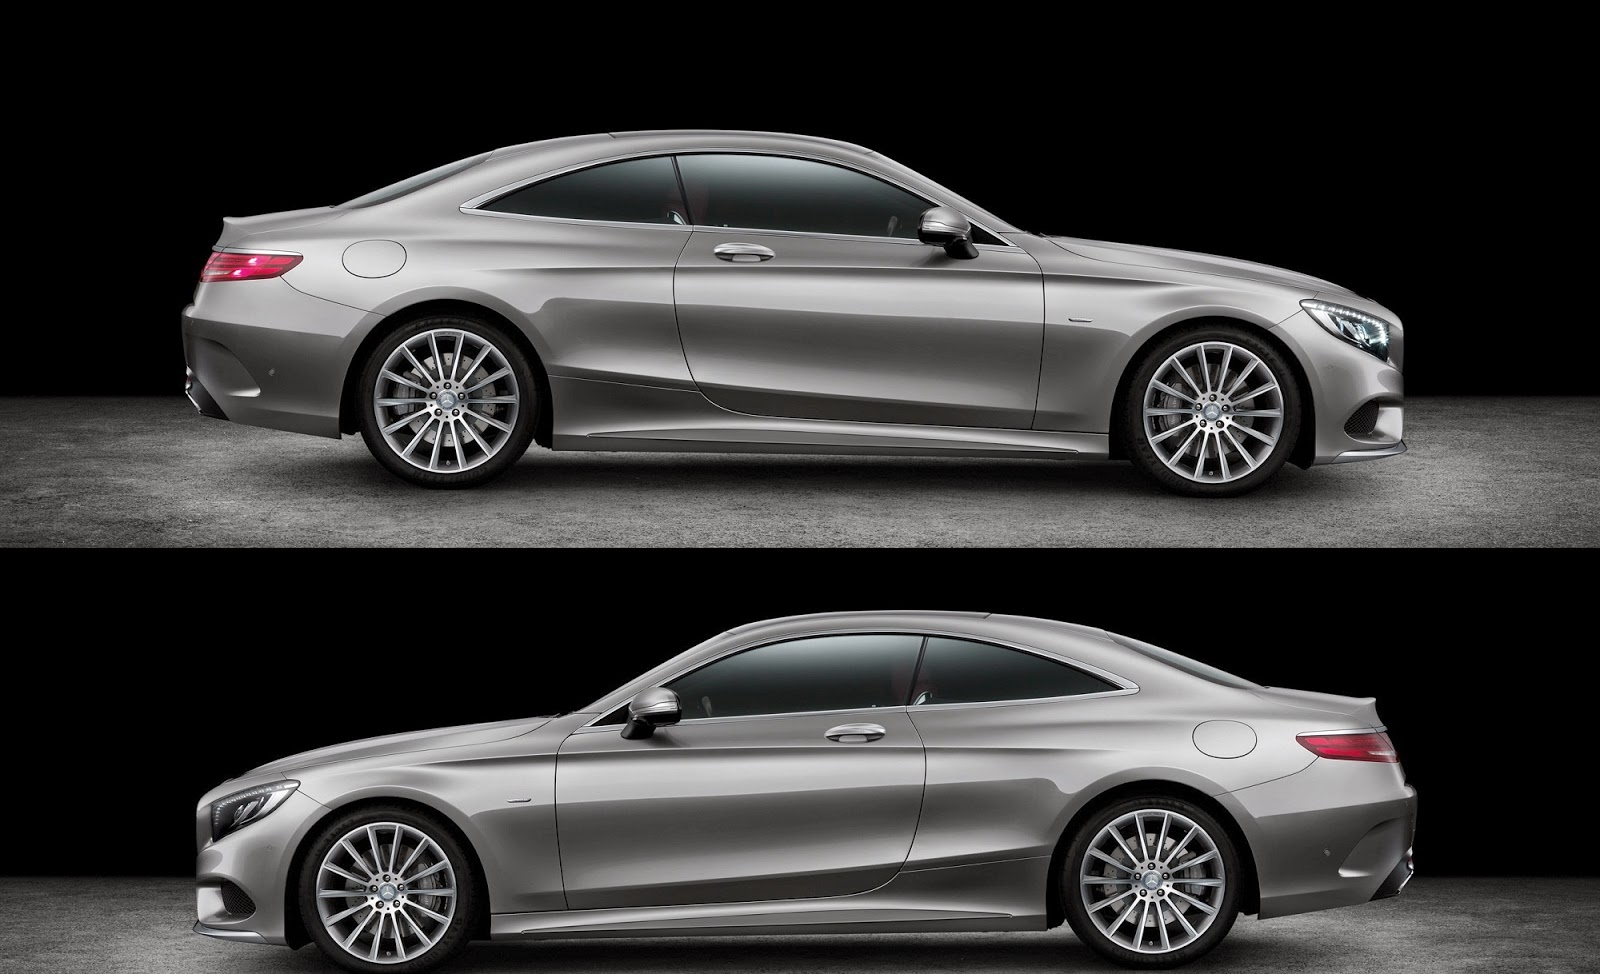 New 2015 mercedes benz s class coupe car reviews new for New mercedes benz s class 2015